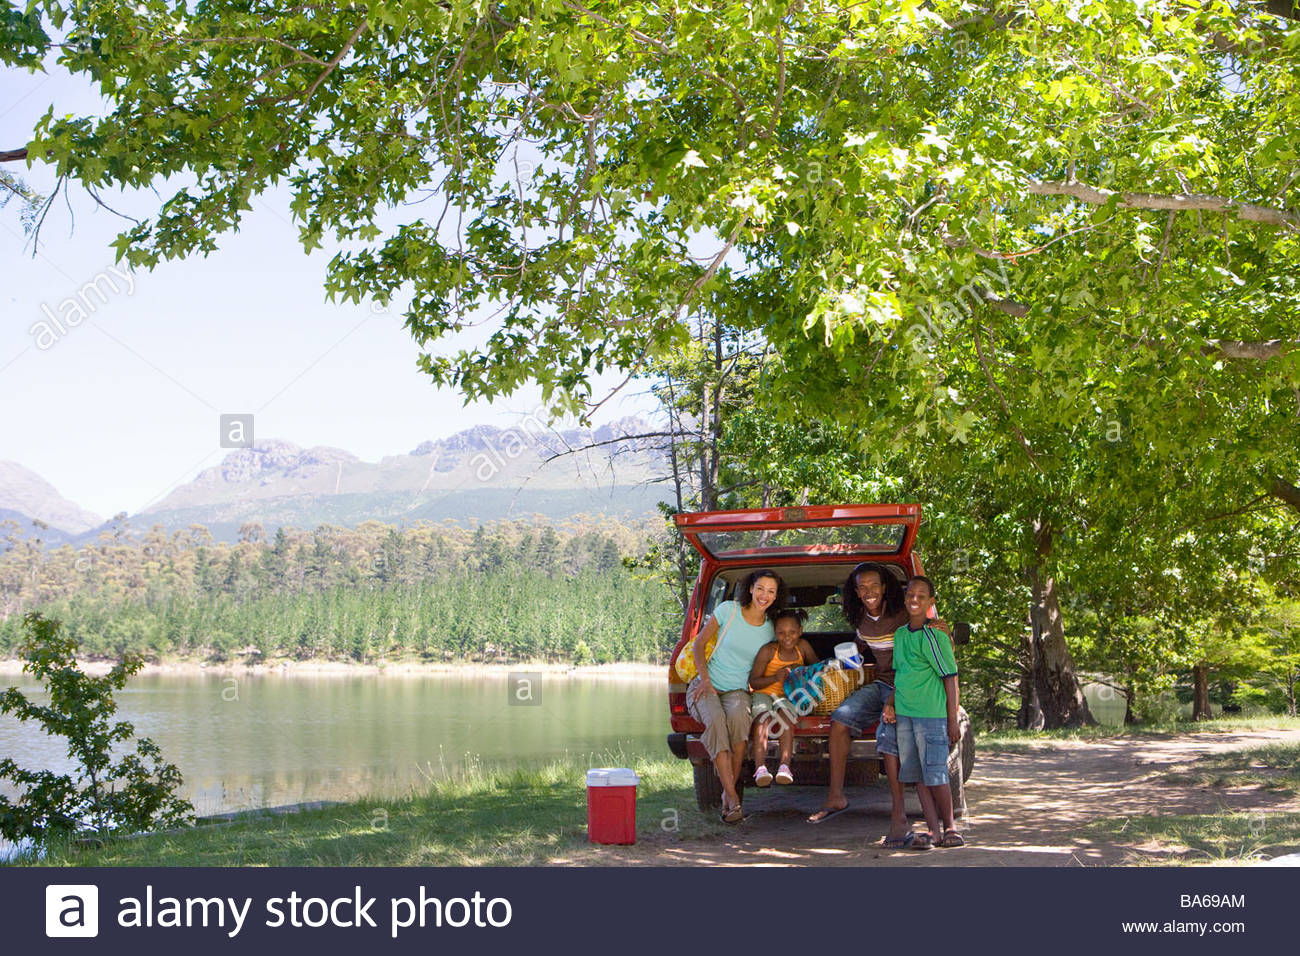 Family picnicking in car by lake - Stock Image